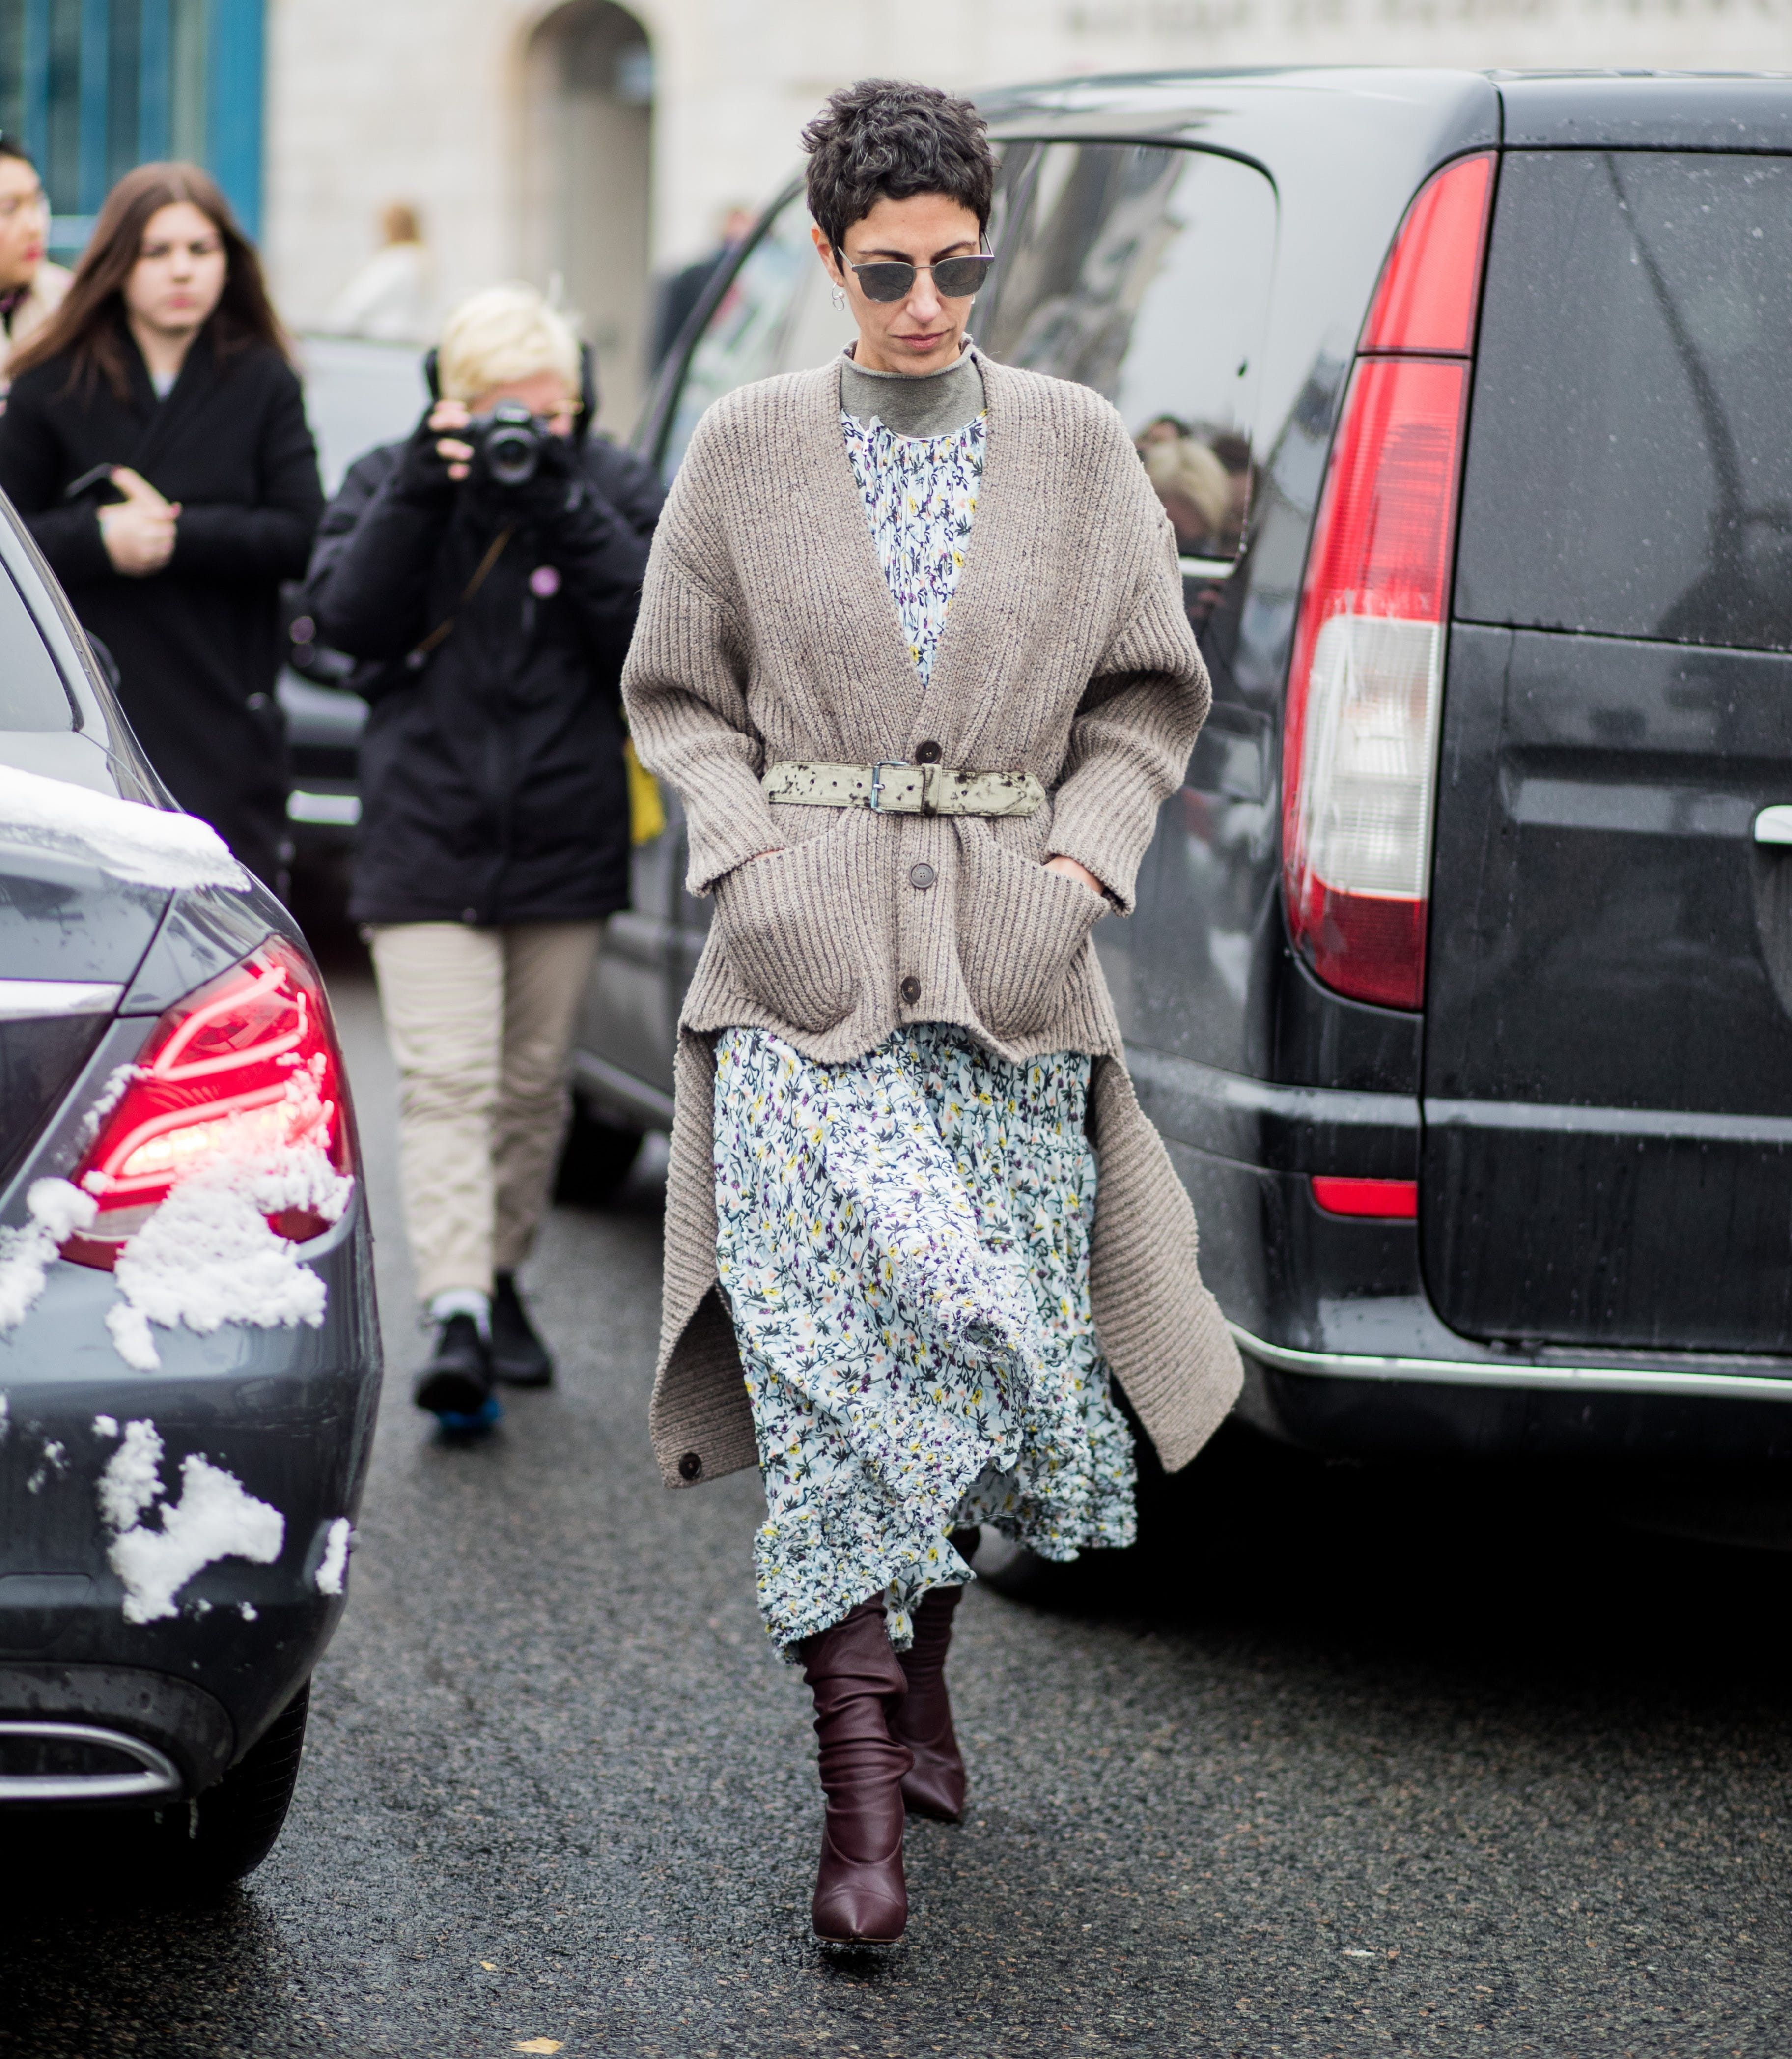 7 Tips For Layering Your Winter Clothes Without Adding